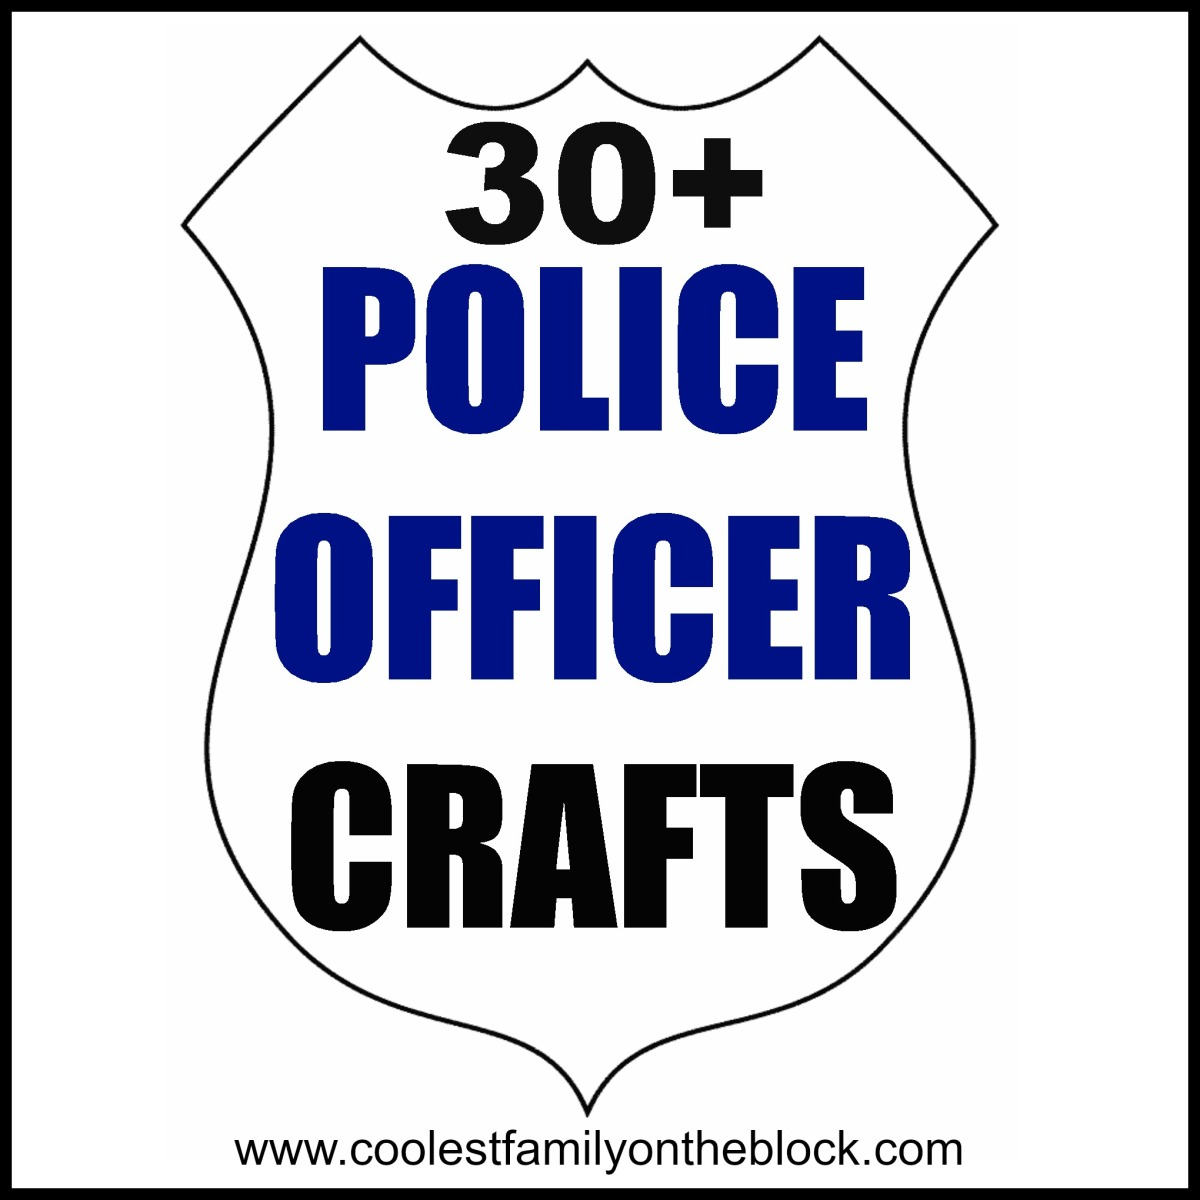 police officer crafts for kids national police week coolest